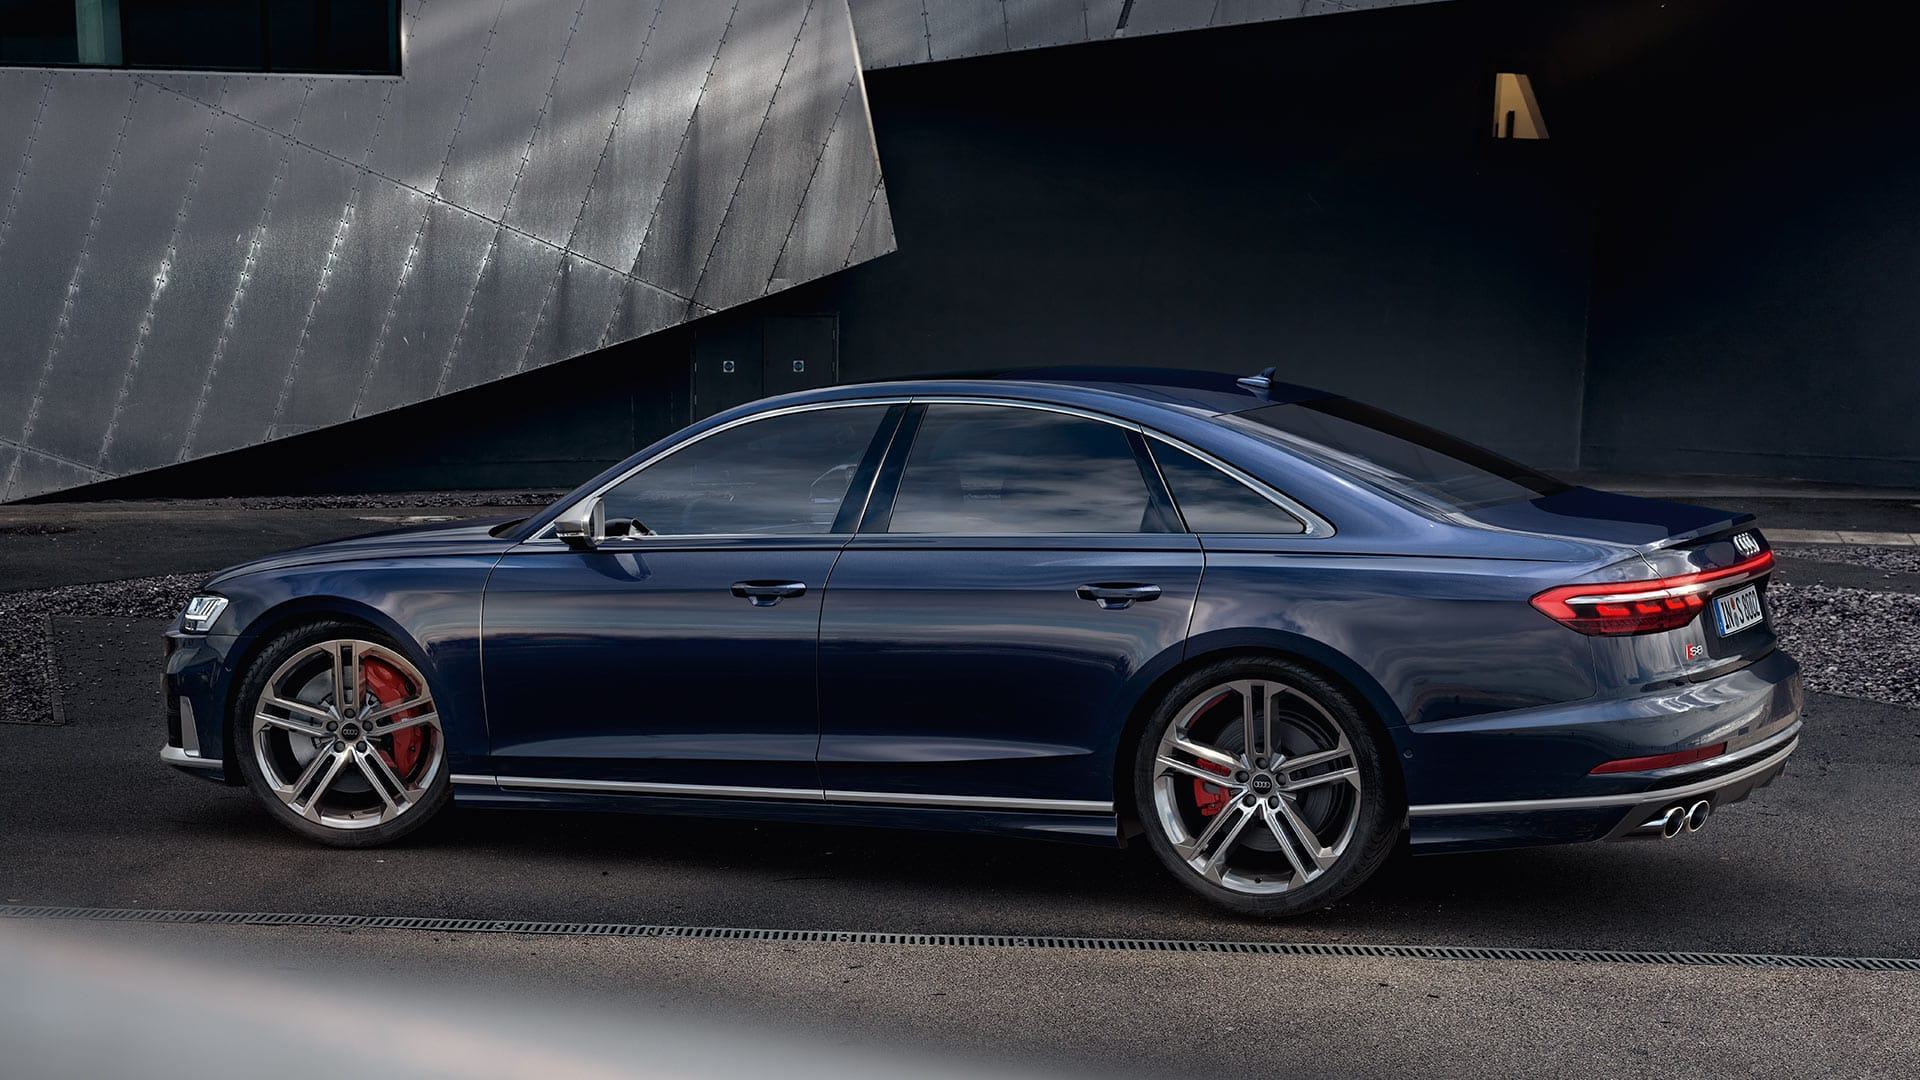 Audi S8 sideview